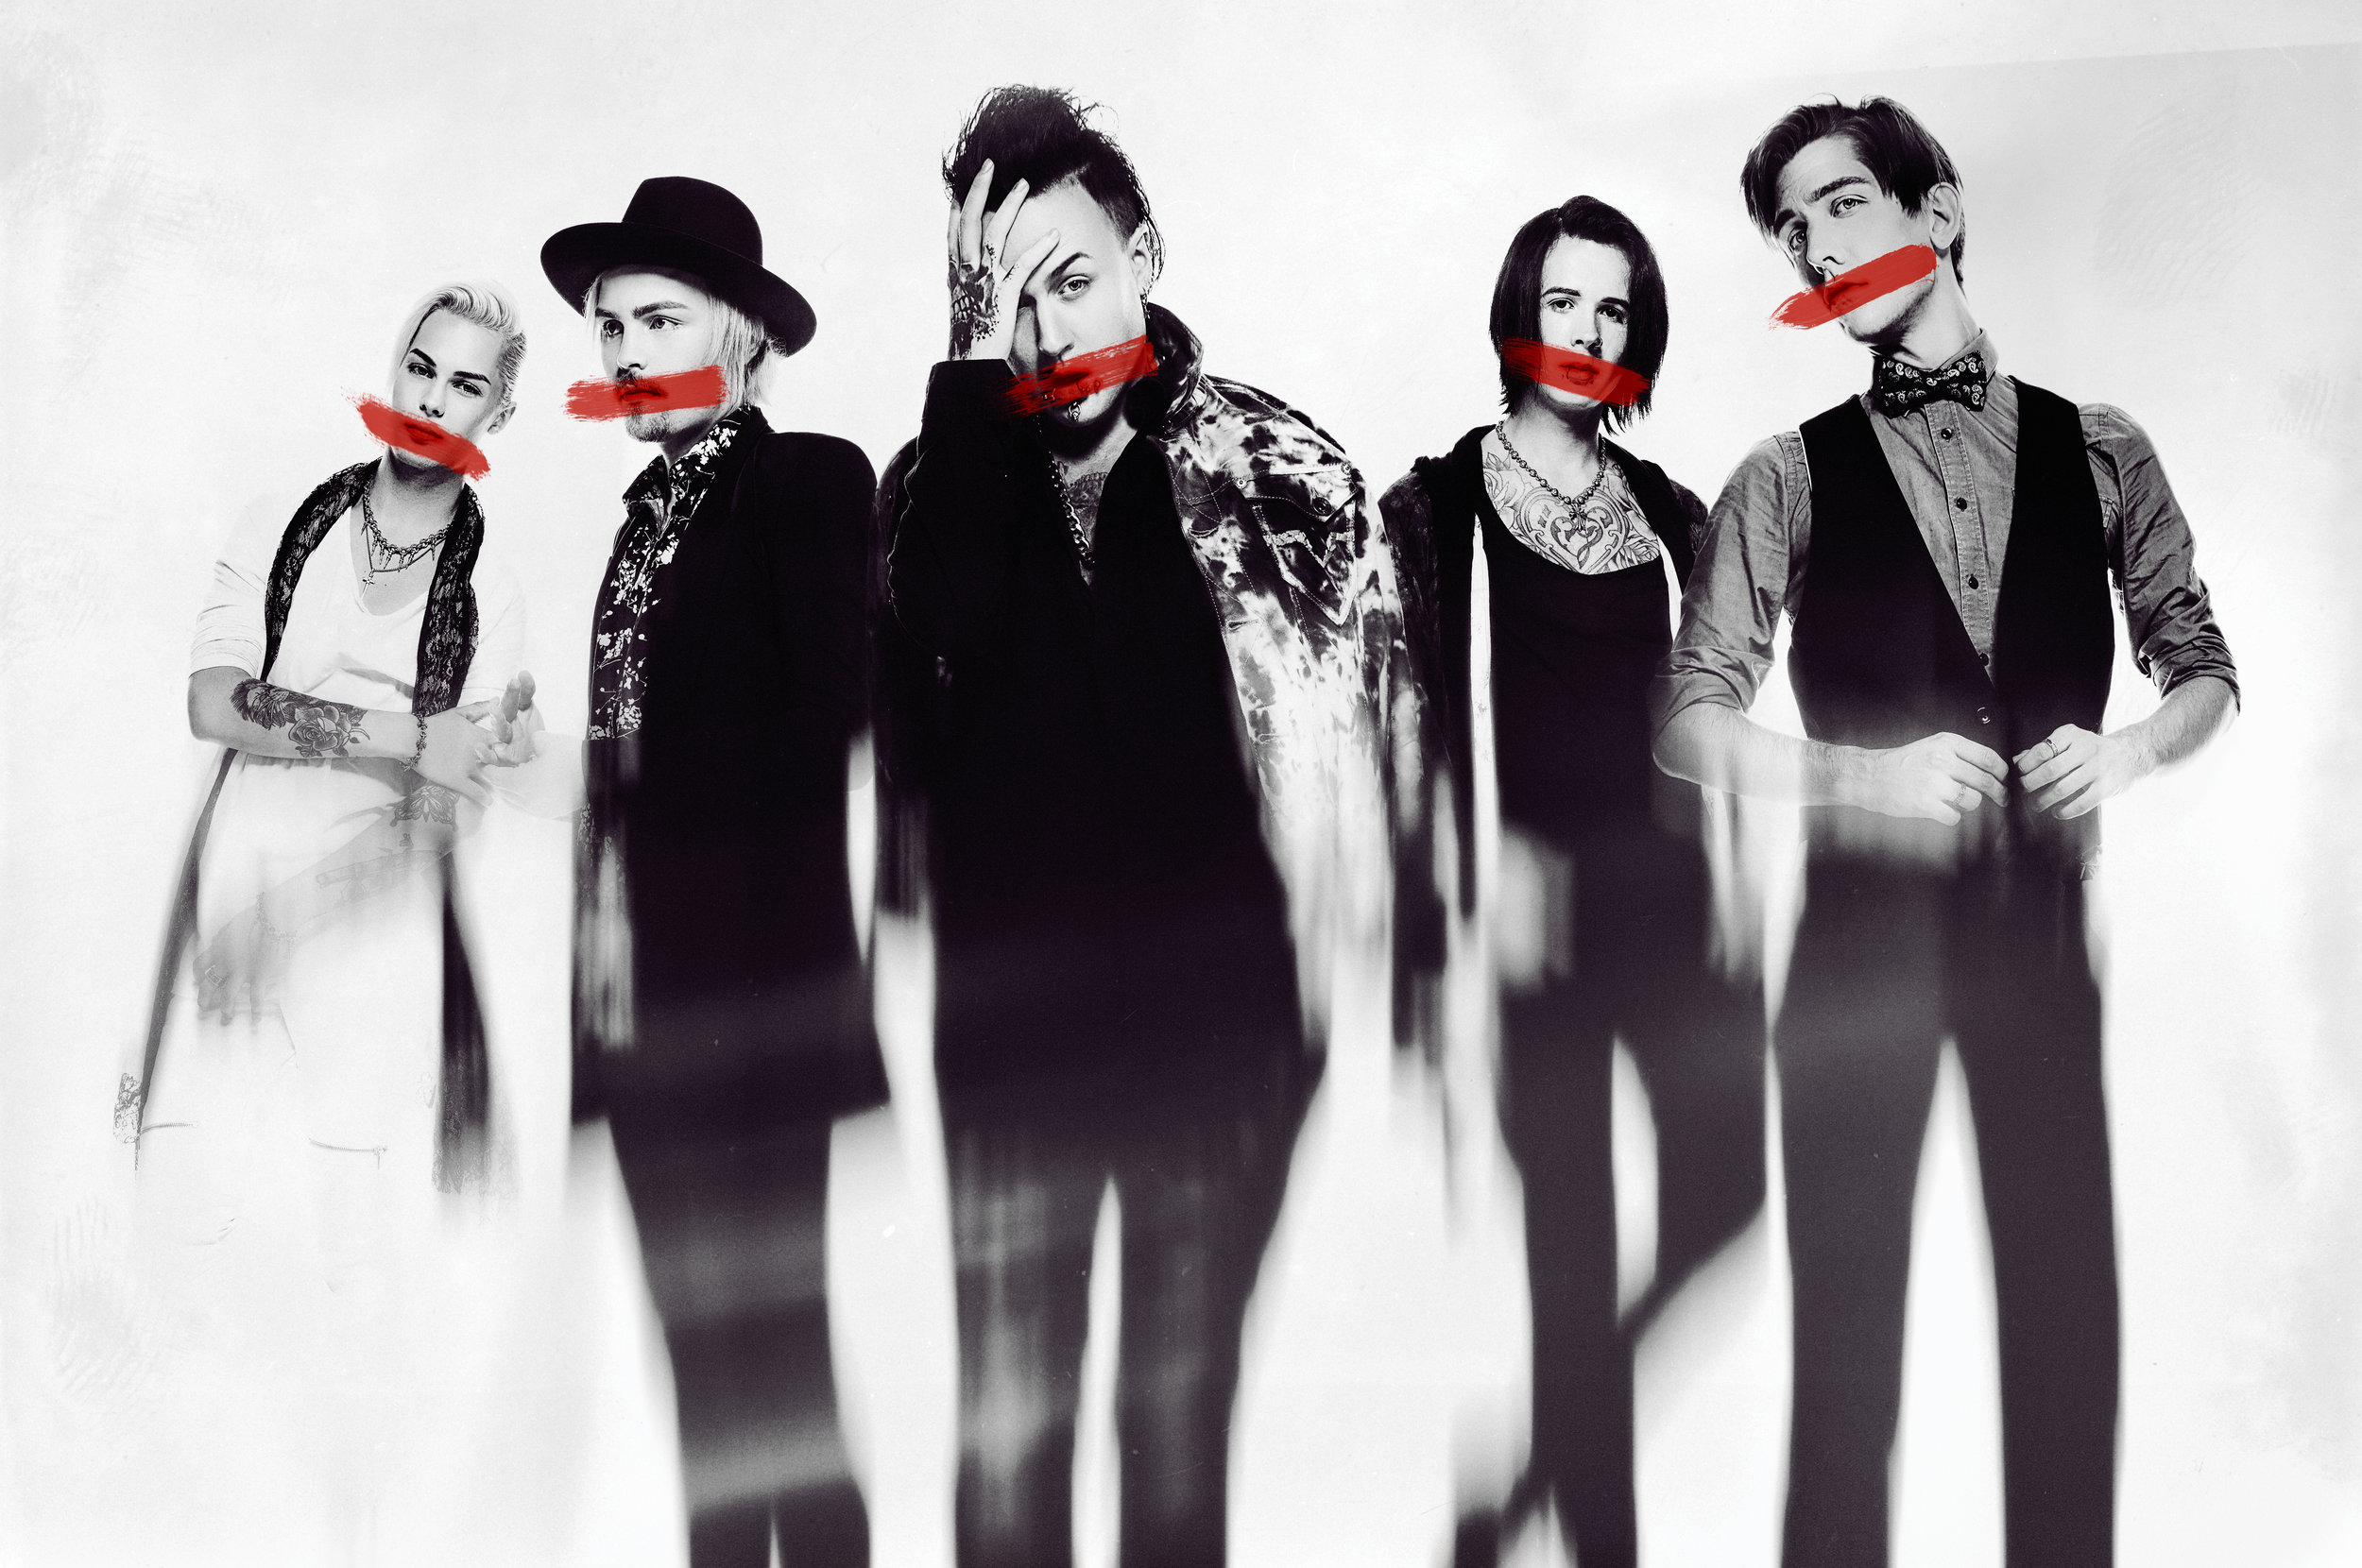 Kerbera Promo stripes.jpg